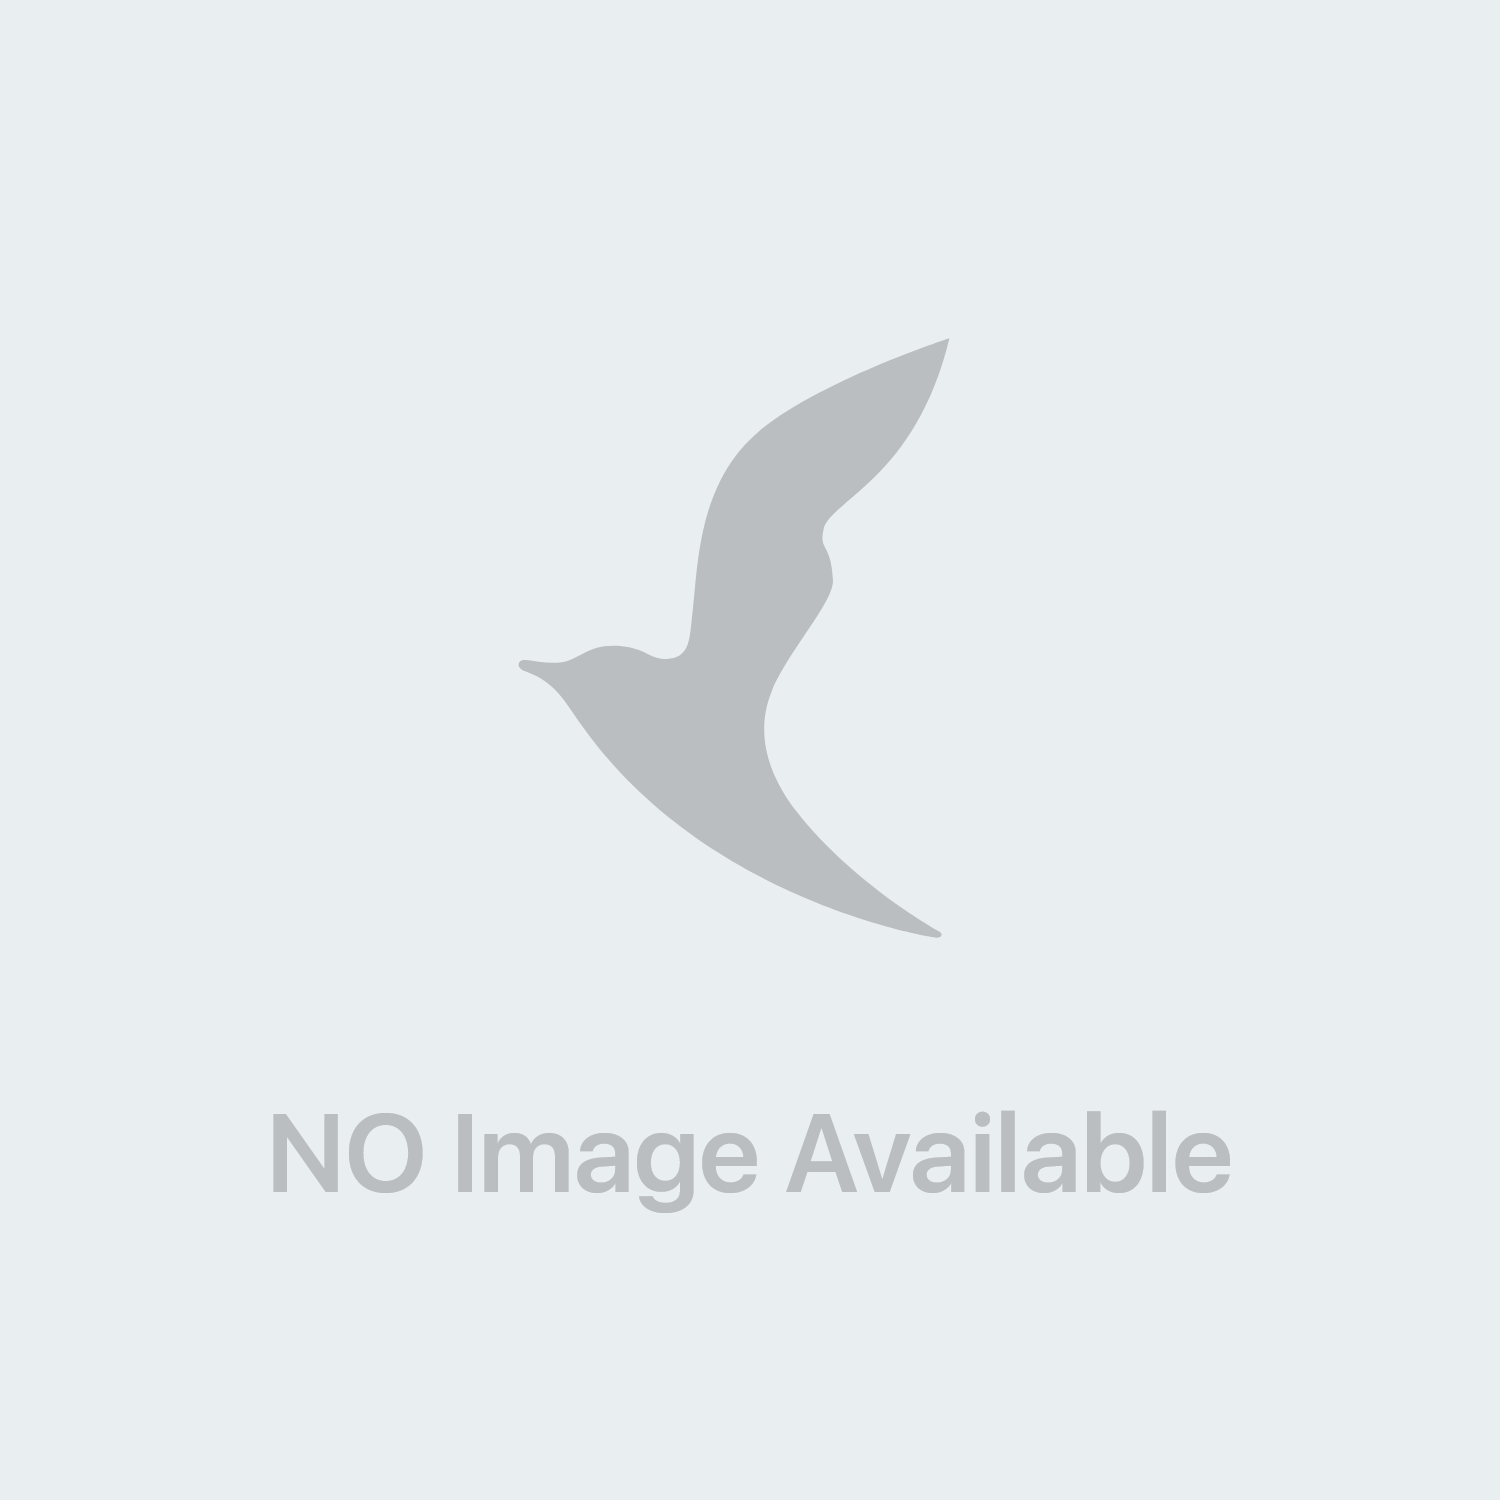 Rilastil Color Cream Chiara Crema Colorata Viso 50 Ml